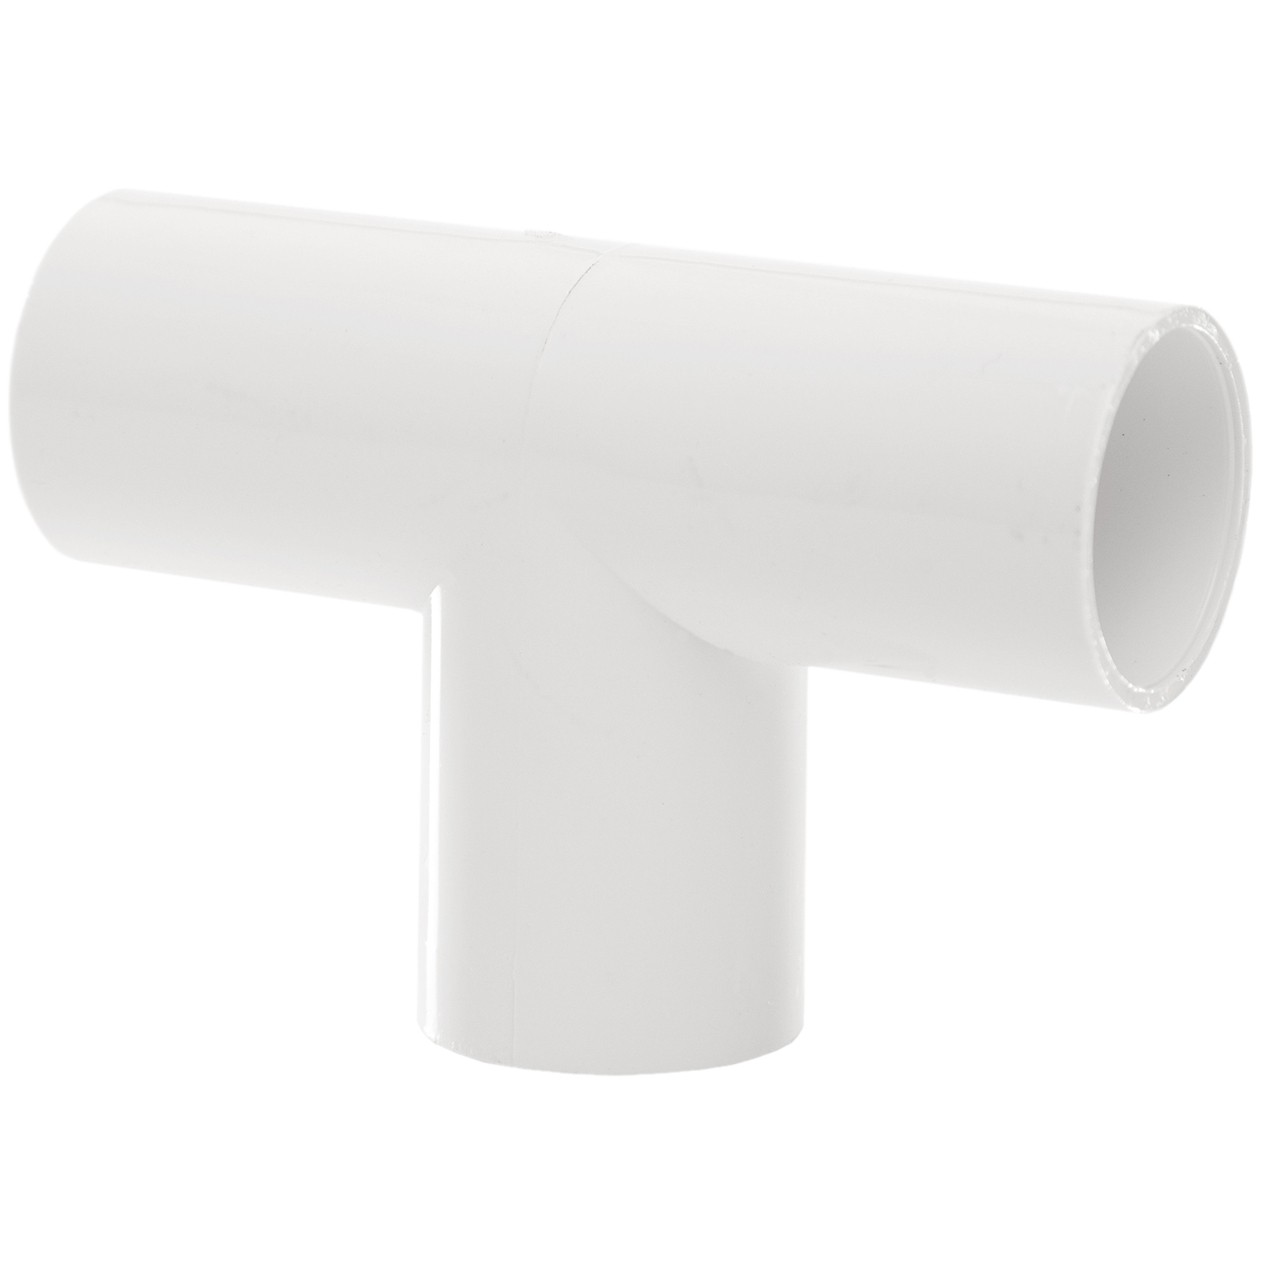 Polypipe 21.5mm Solvent Weld Overflow 90 Degree Tee - White